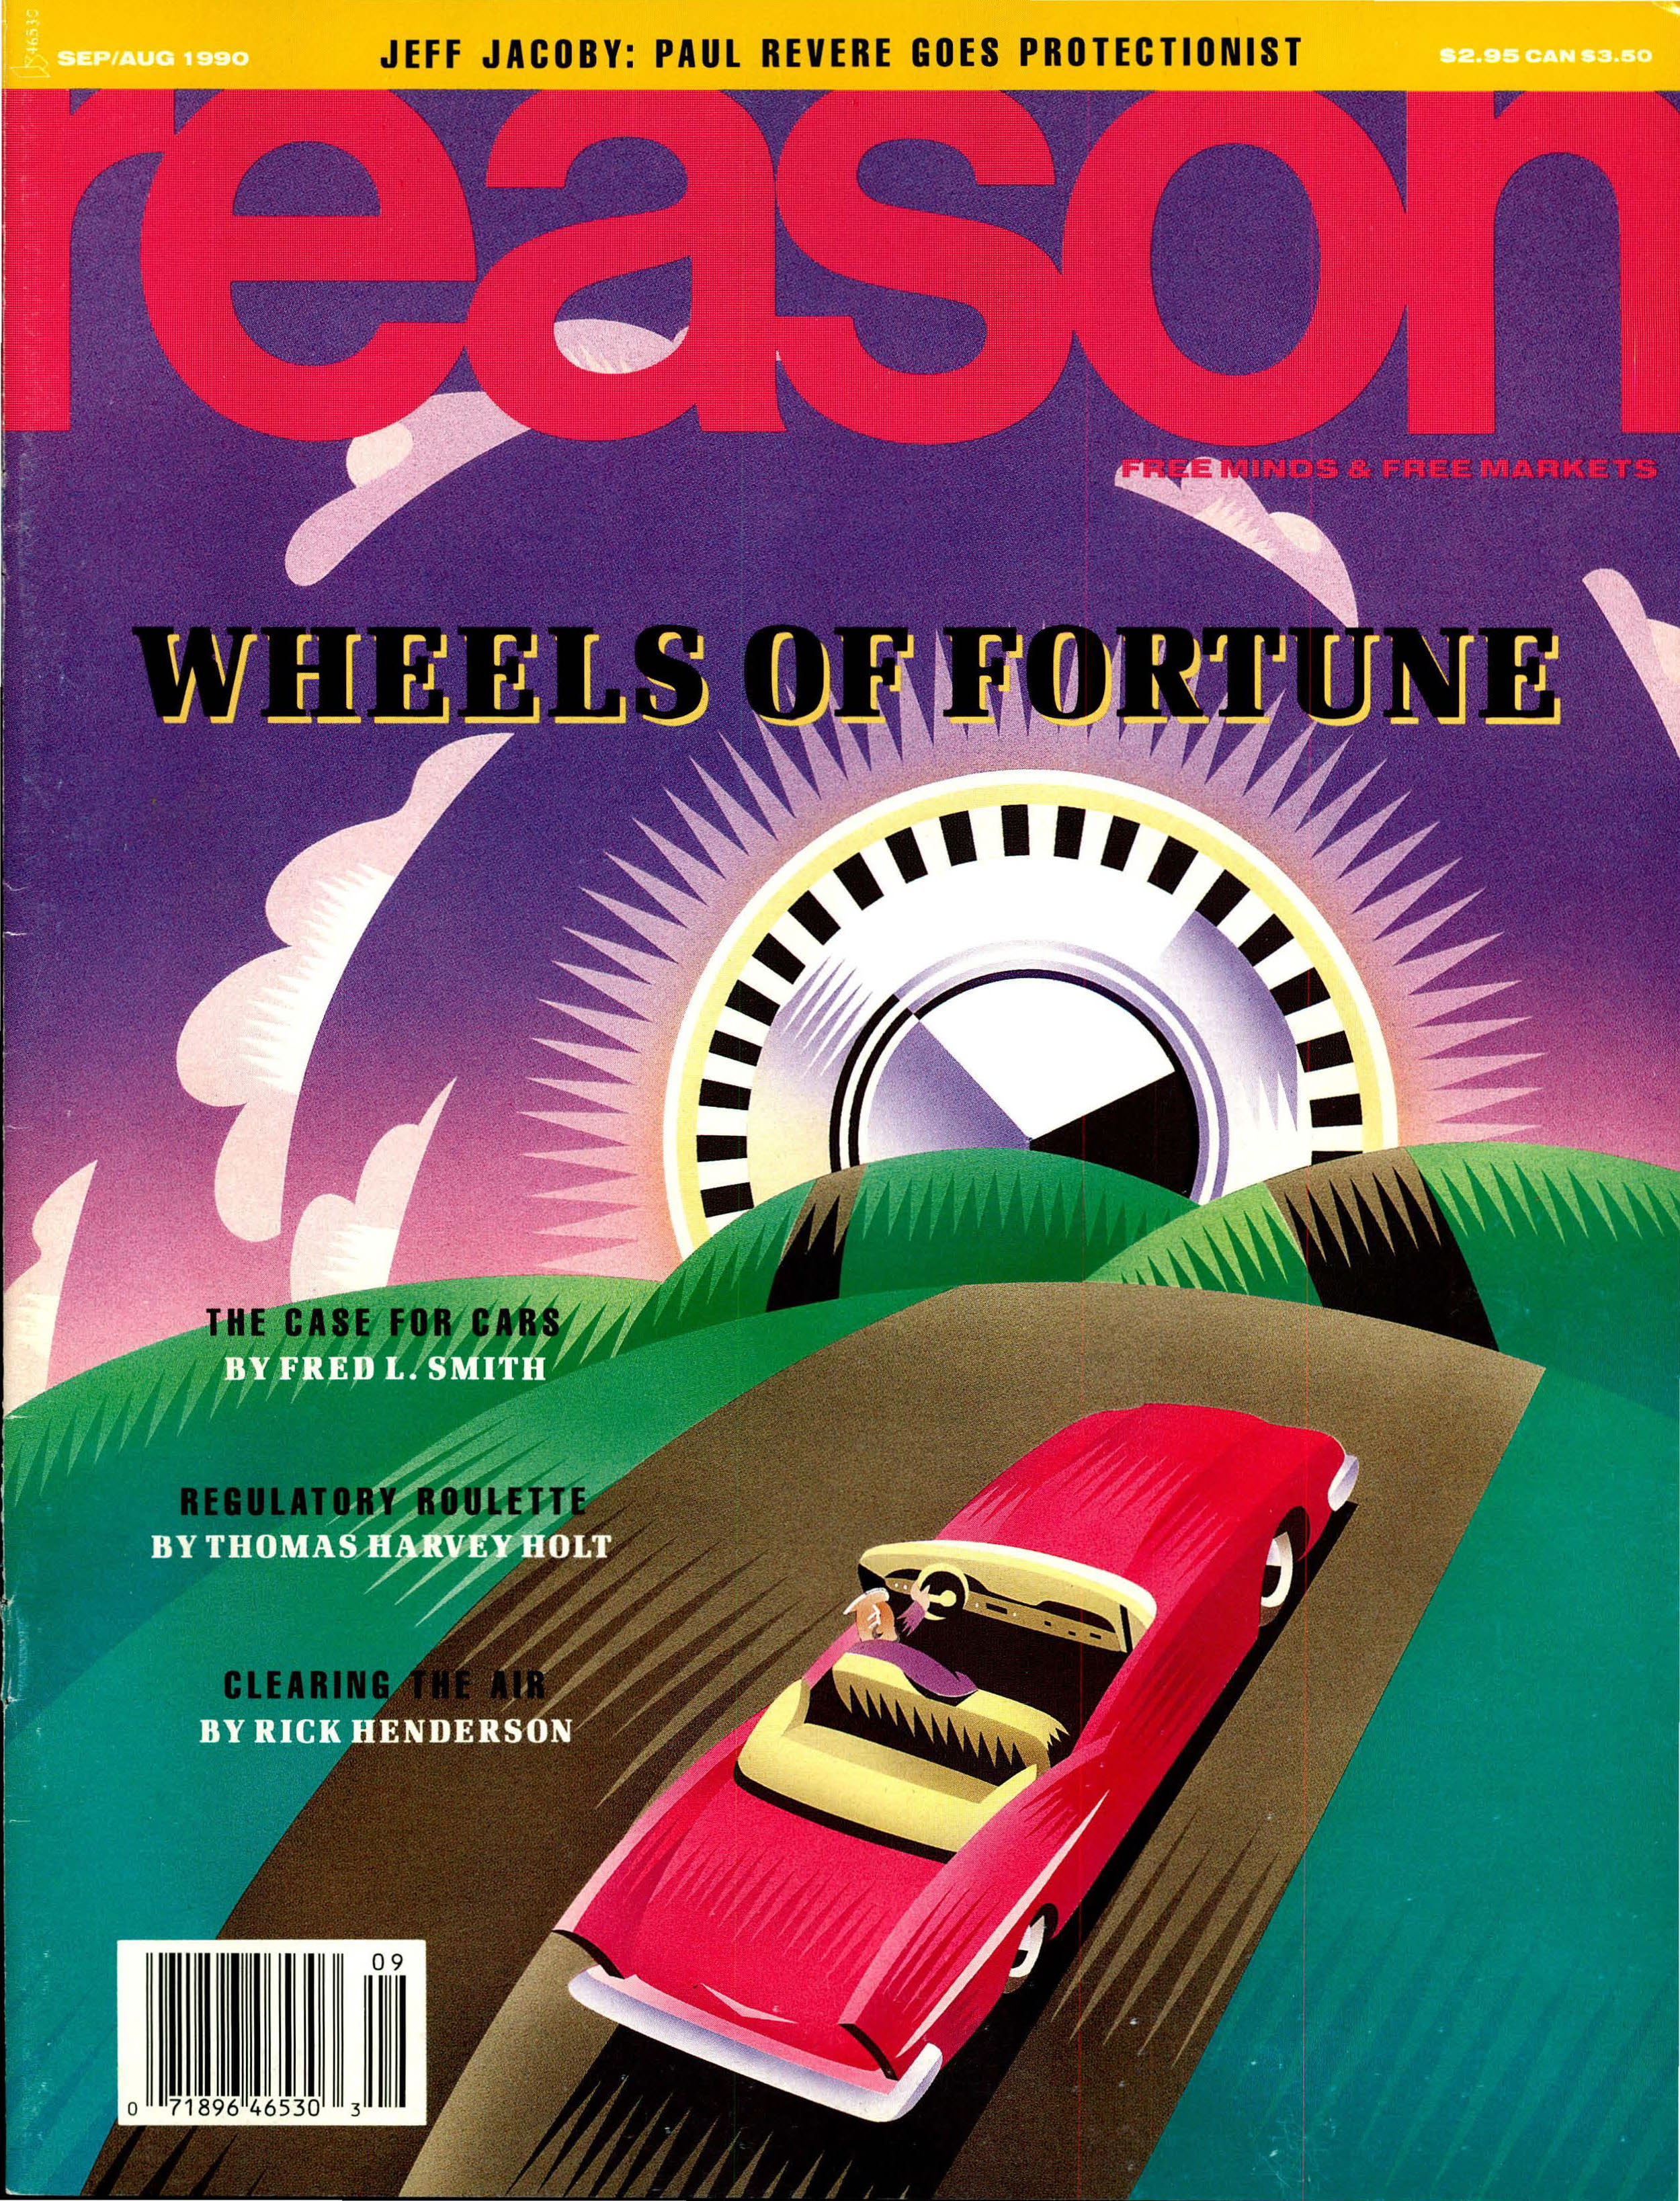 Reason Magazine, August/September 1990 cover image